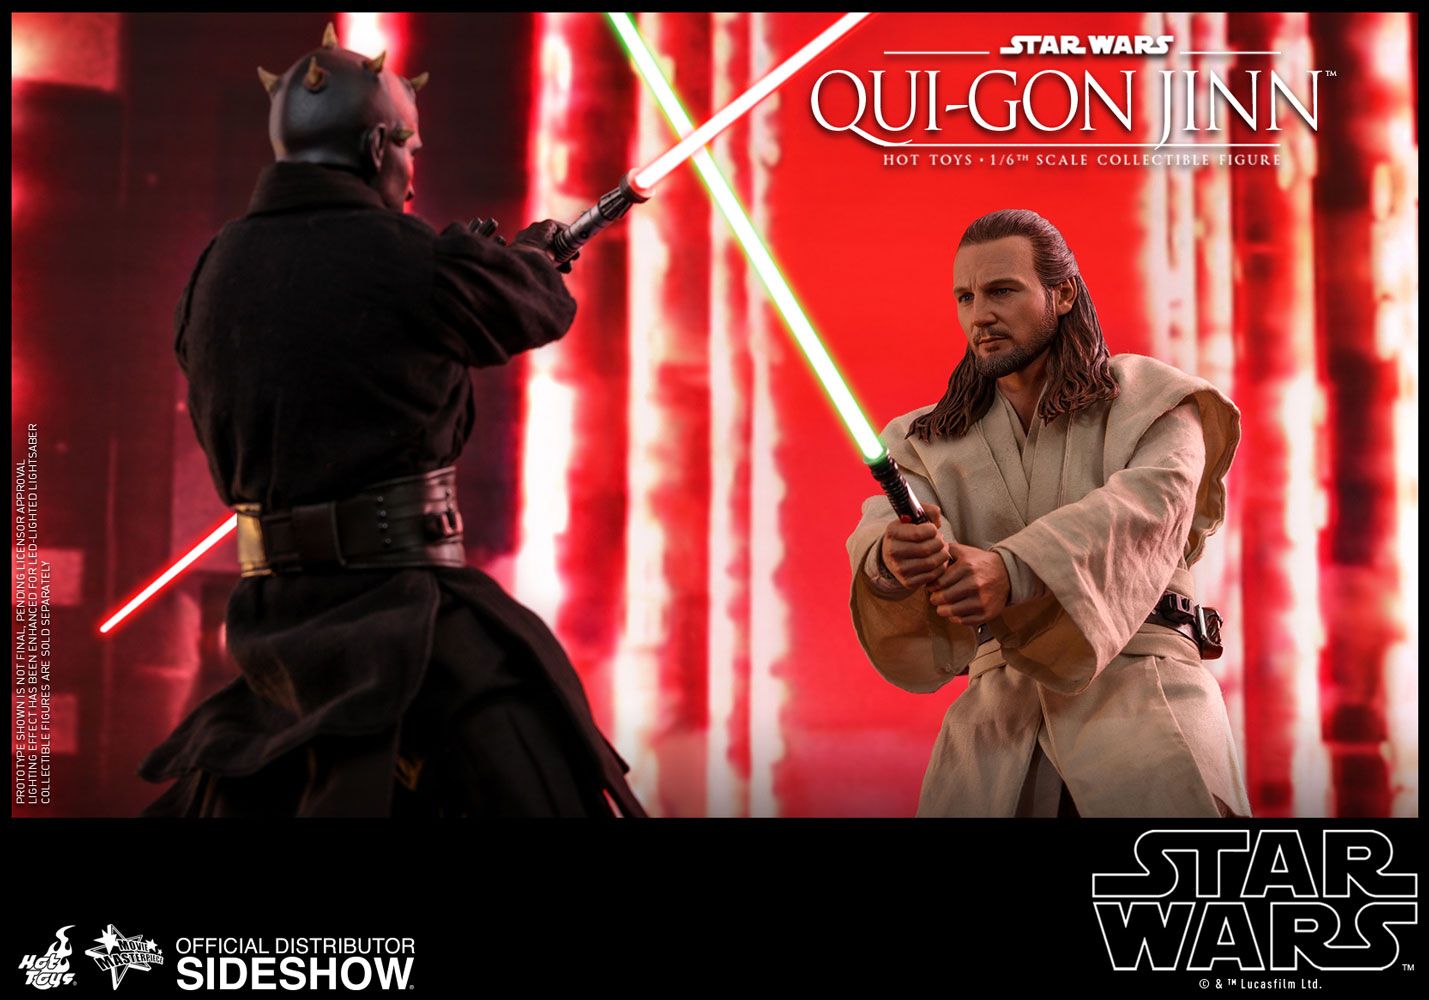 Star Wars Qui-Gon Jinn Sixth Scale Figure by Hot Toys